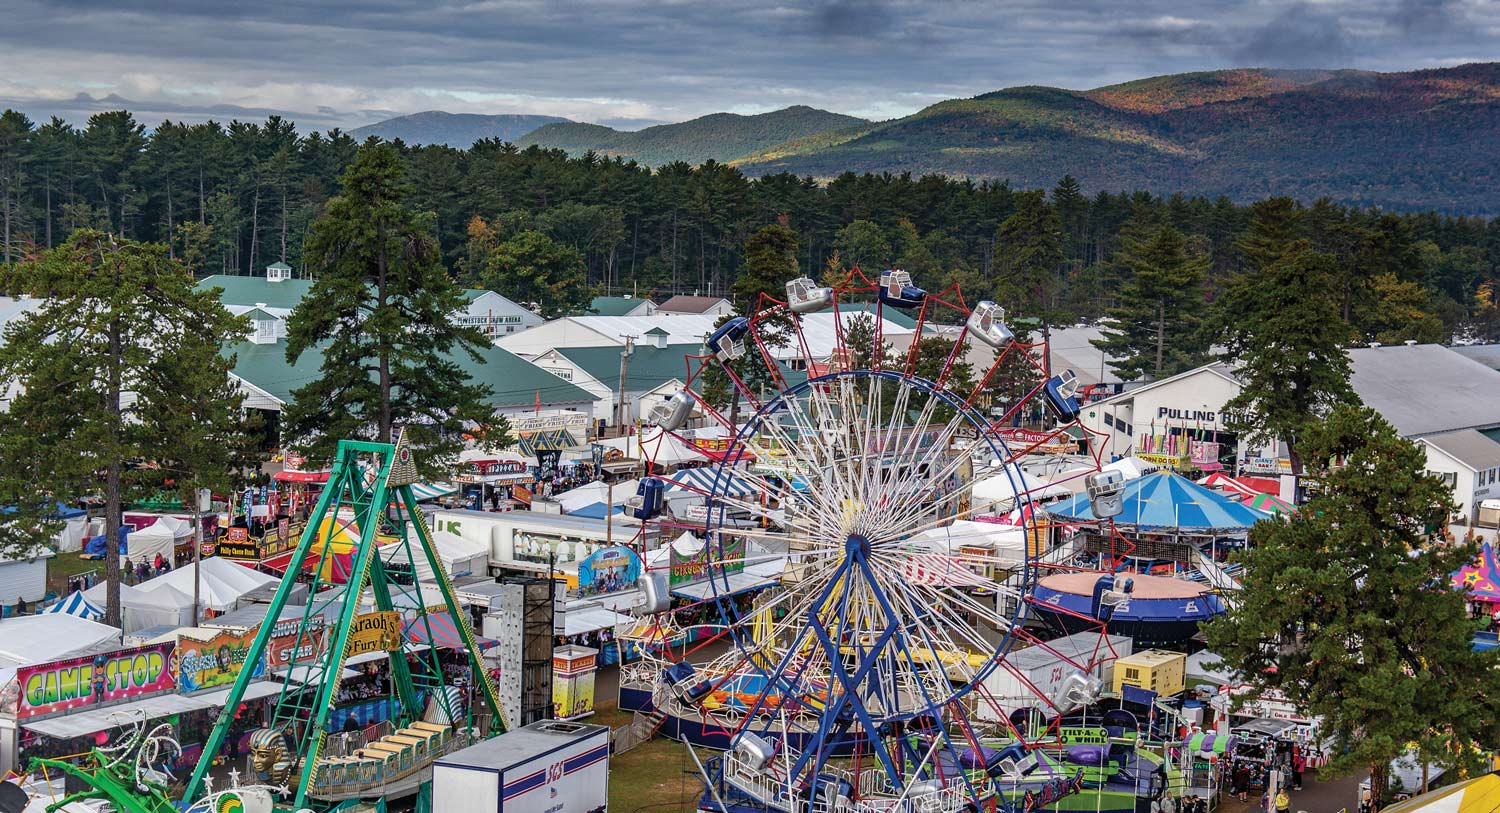 The Fryeburg Fair is one of several Maine fall festivals returning to in-person events in 2021